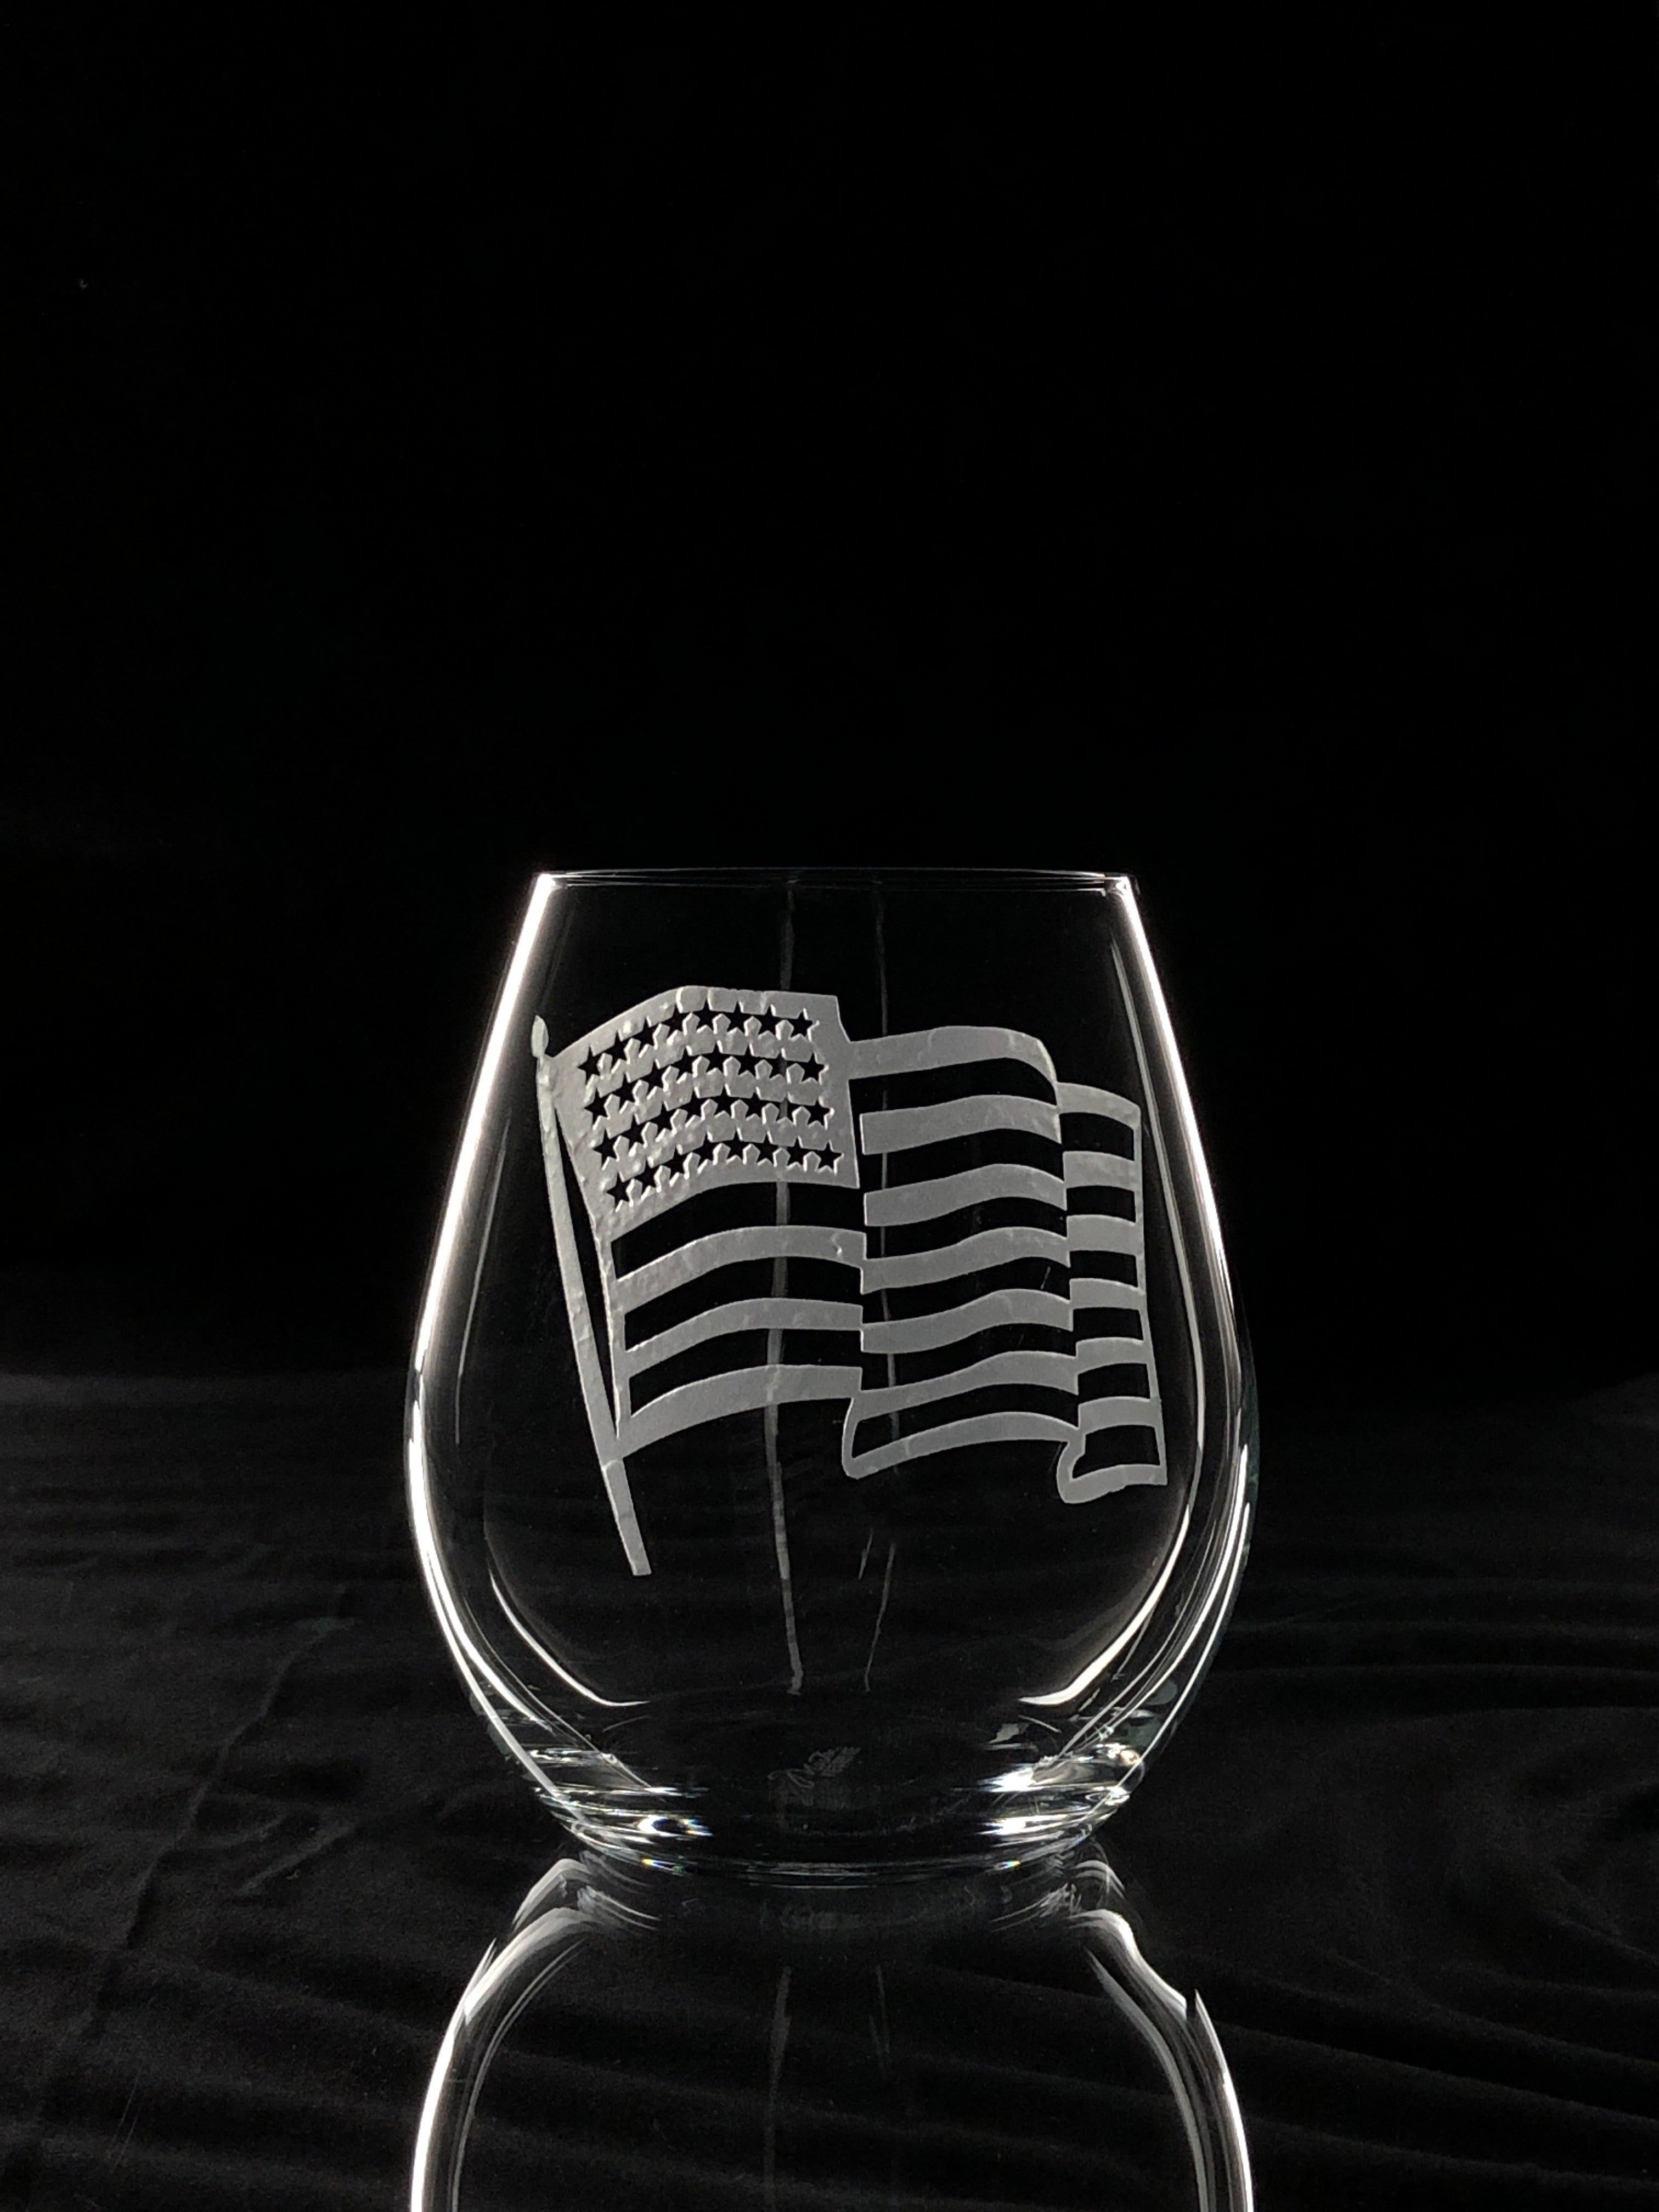 American Flag Engraved on Stemless Crystal Wine Glass